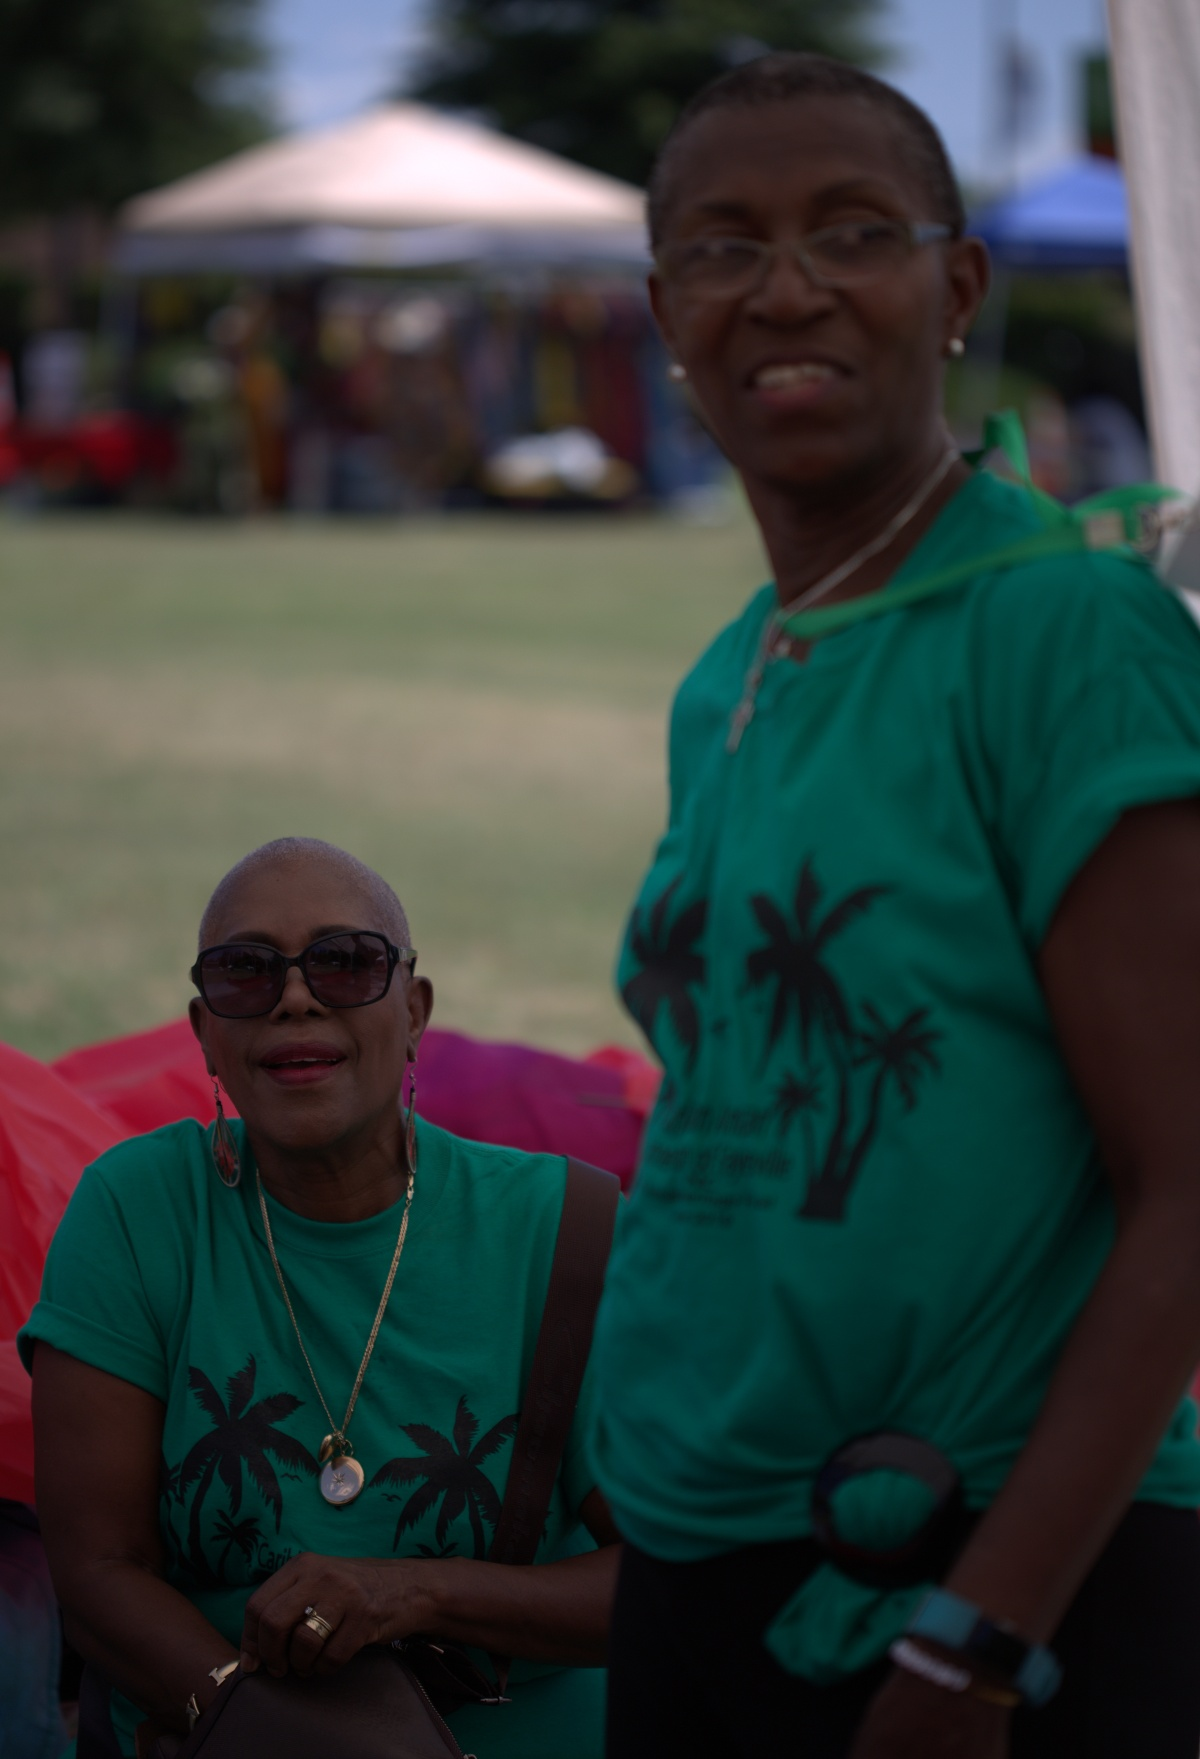 Photography ~ Flickr Album of the 8th Annual Caribbean Heritage Festival Photo Shoot is published– 06/25